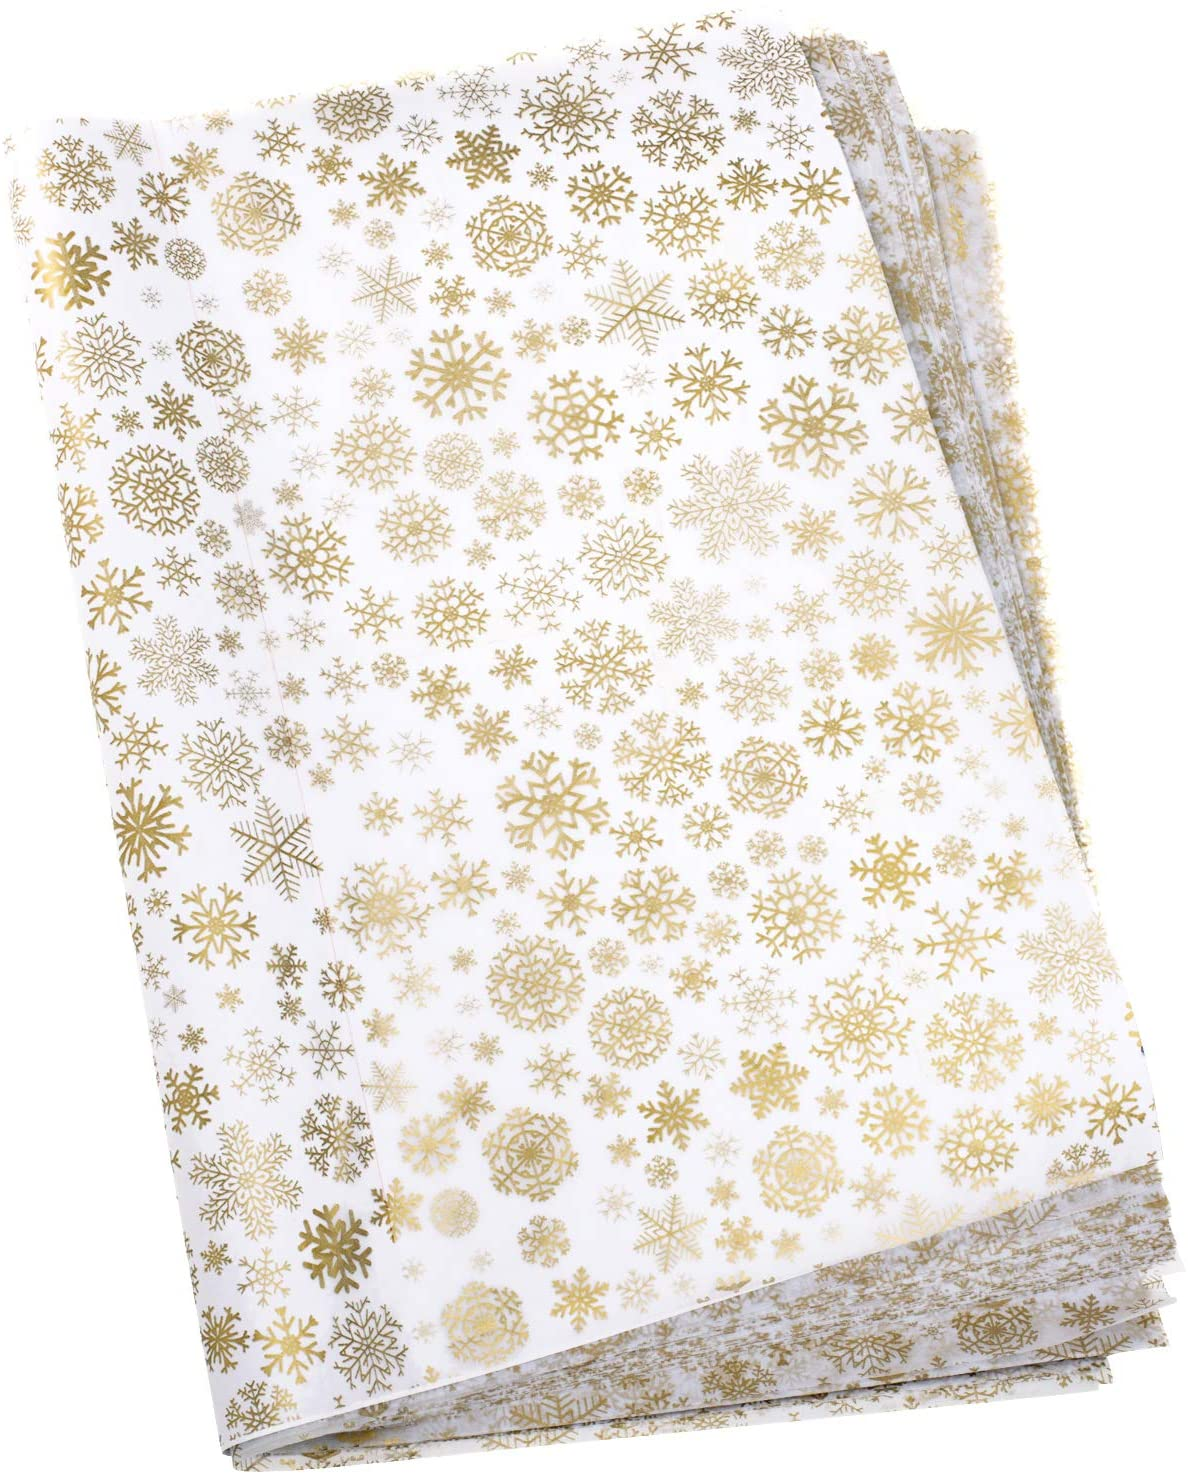 Whaline Snowflake Tissue Paper 20 x 28 Christmas Metallic Acid Free Wrapping Paper Bulk Big Size for Home, DIY and Craft, Gift Bags New Year Decorations, 60 Sheets (Gold)0 Sheets Tissue Paper Whaline Snowflake Acid Free 20 x 28 for Wrapping Paper DIY and Craft, Gift Bags Big Size Christmas Decorations (Gold)